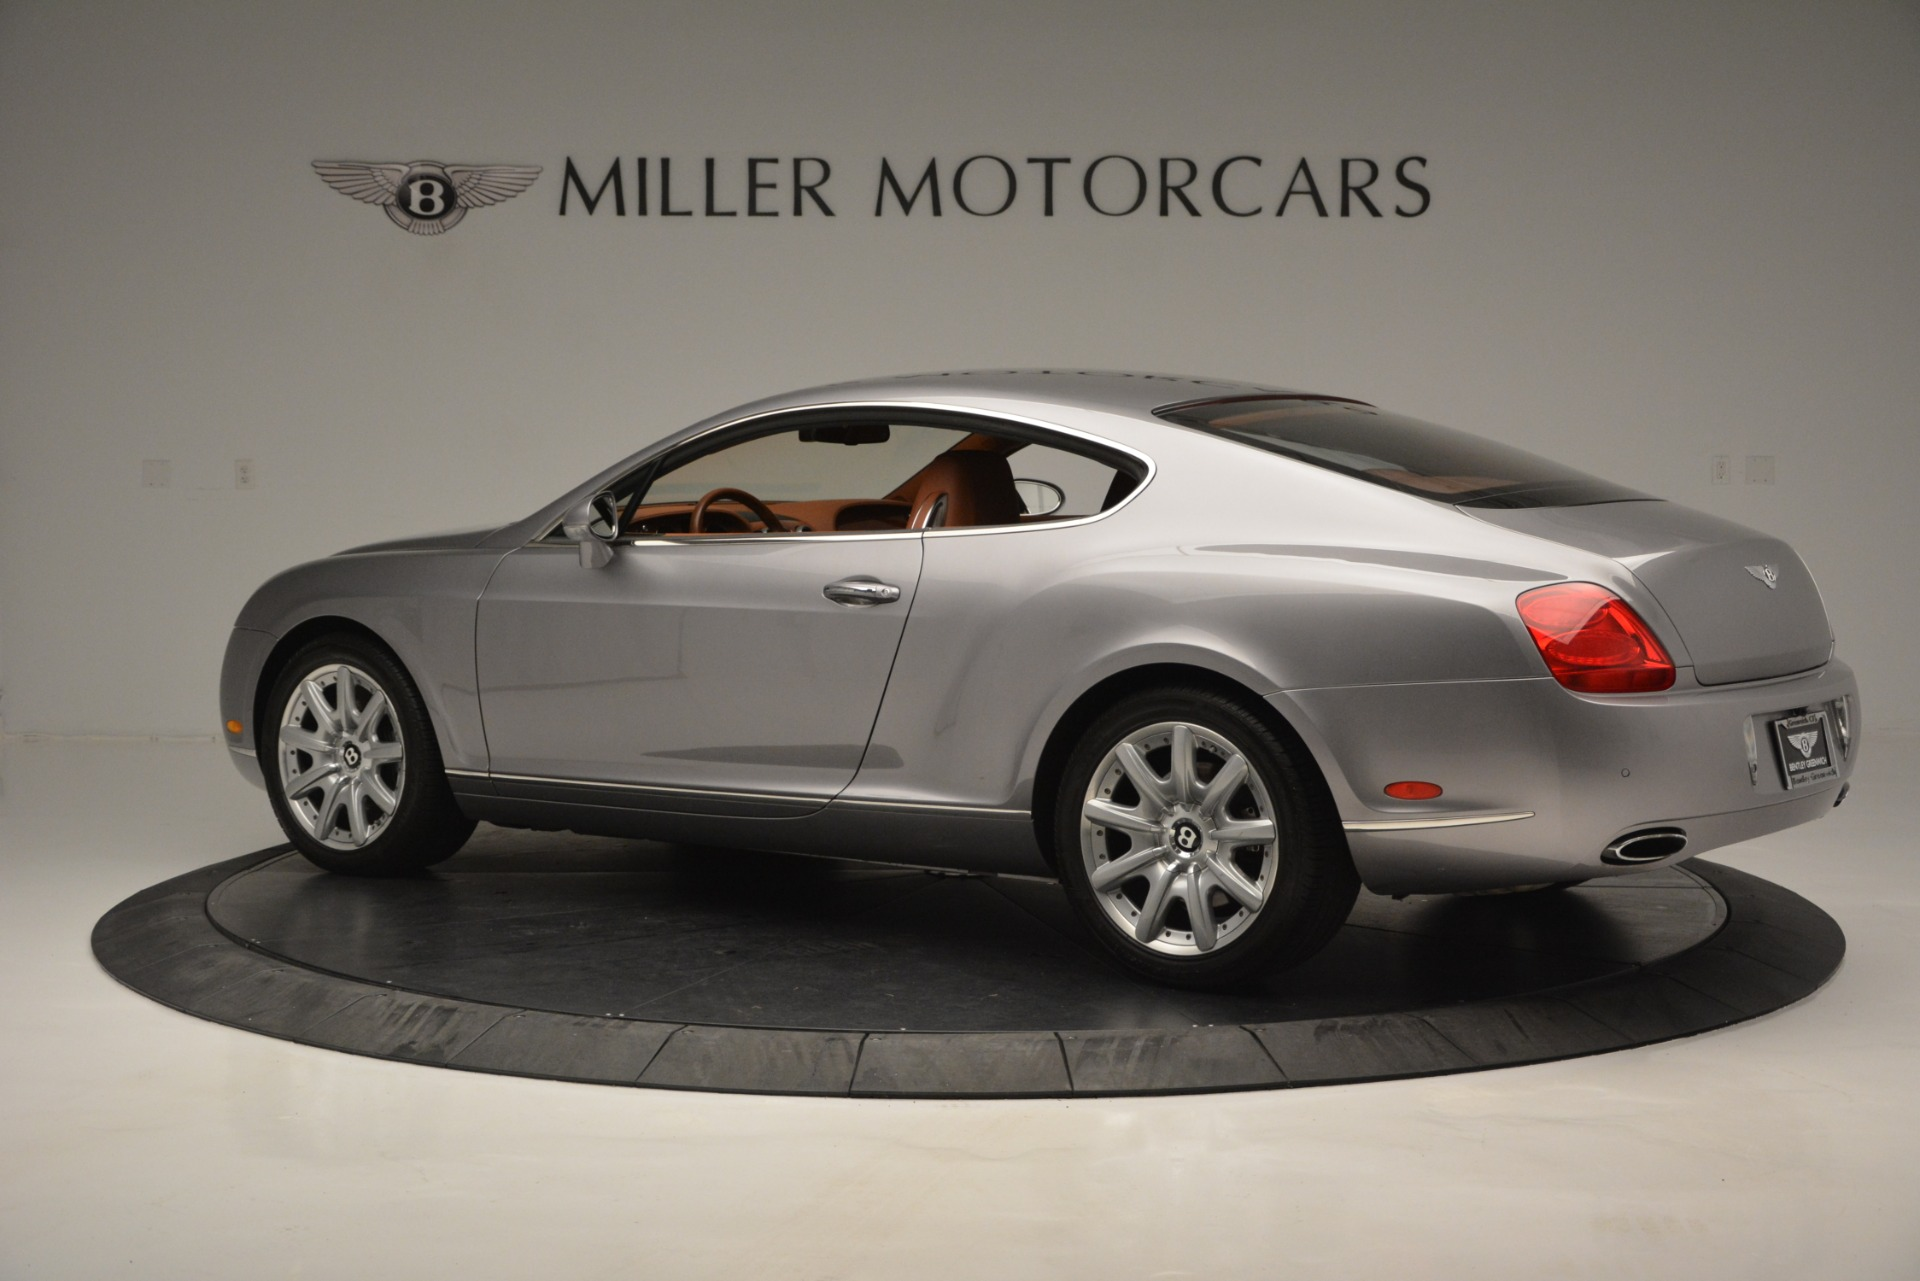 Used 2005 Bentley Continental GT GT Turbo For Sale In Greenwich, CT 2726_p4